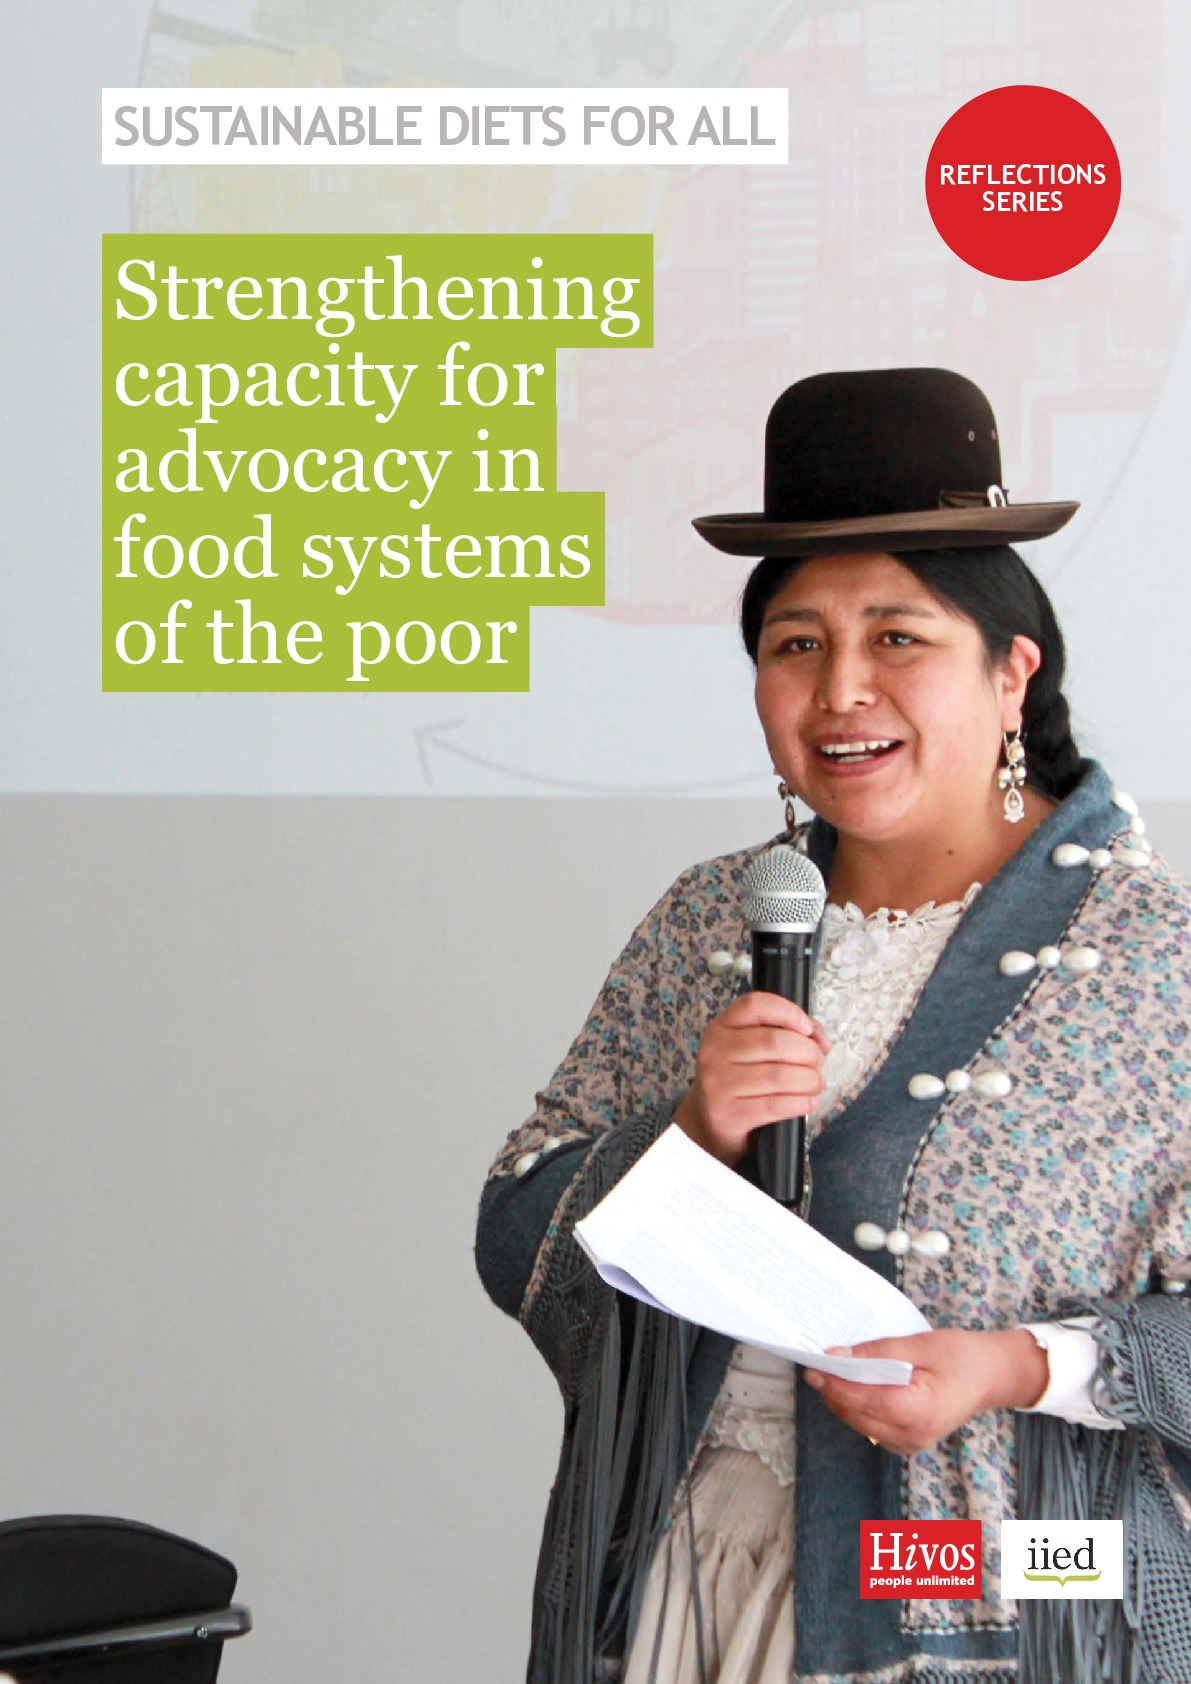 Strengthening capacity for advocacy in food systems of the poor